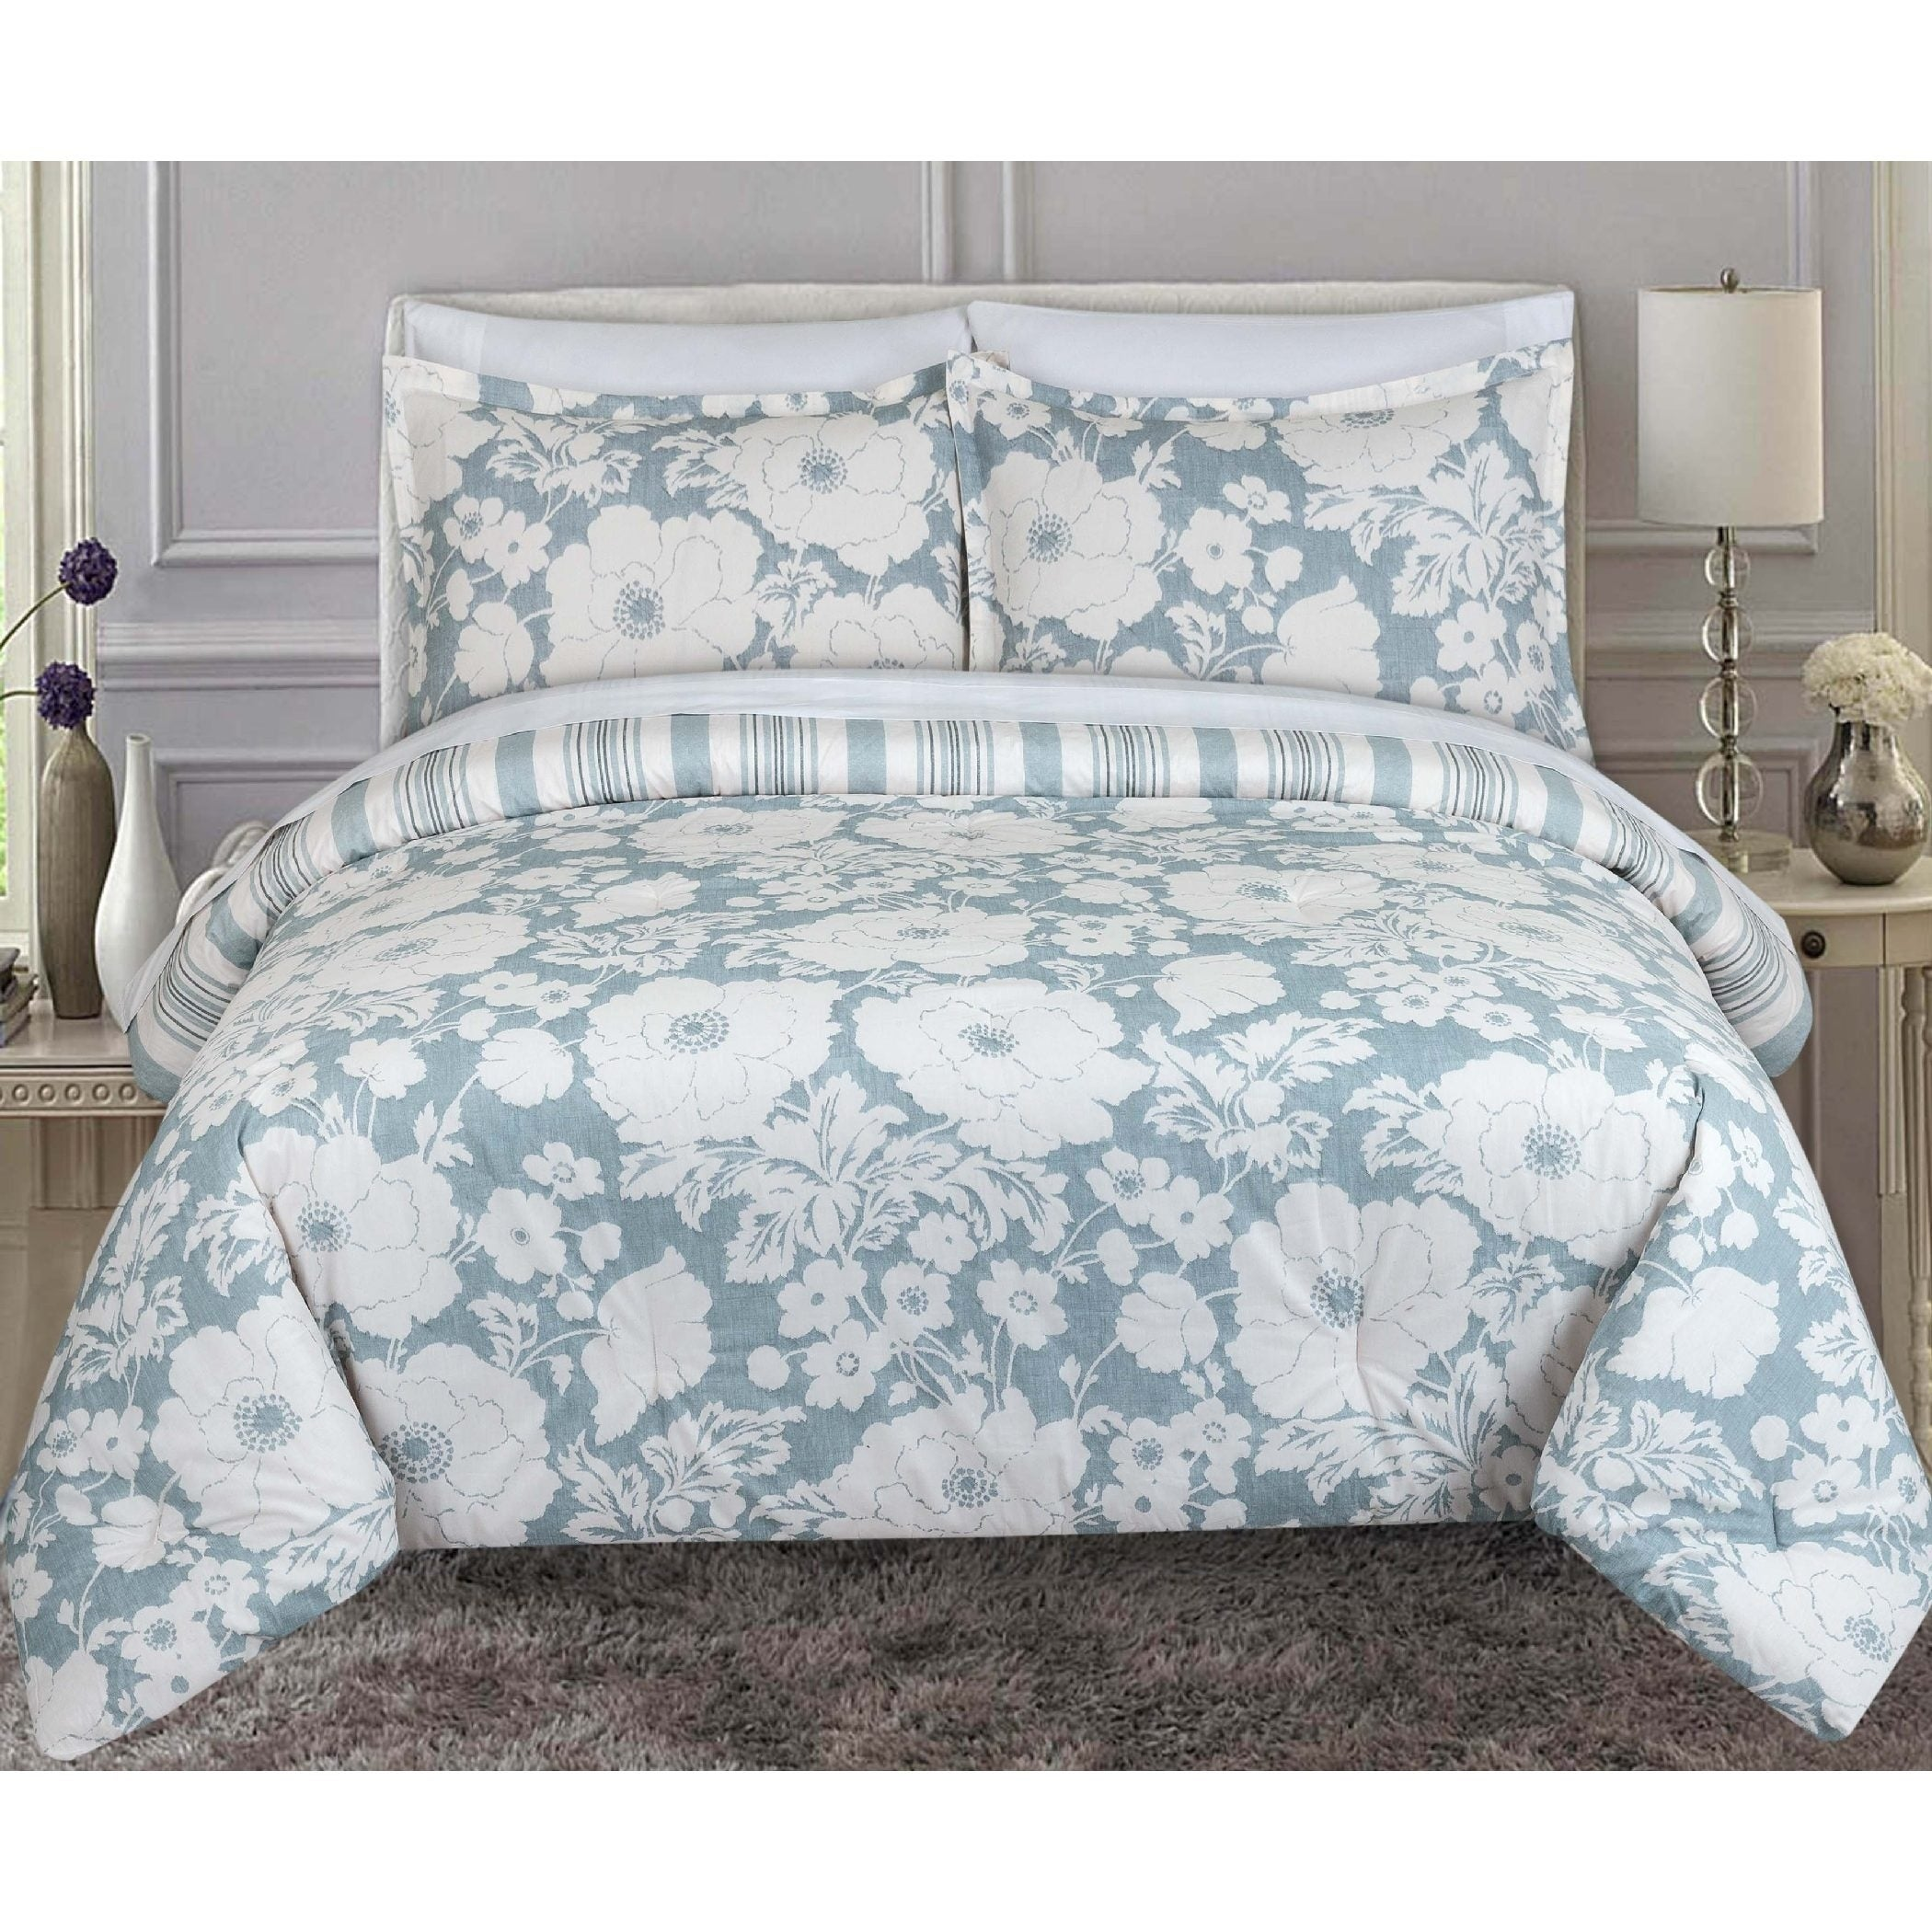 the luno add by your element a contemporary bedroom to graphic chambray duvet sheridan cover pin with